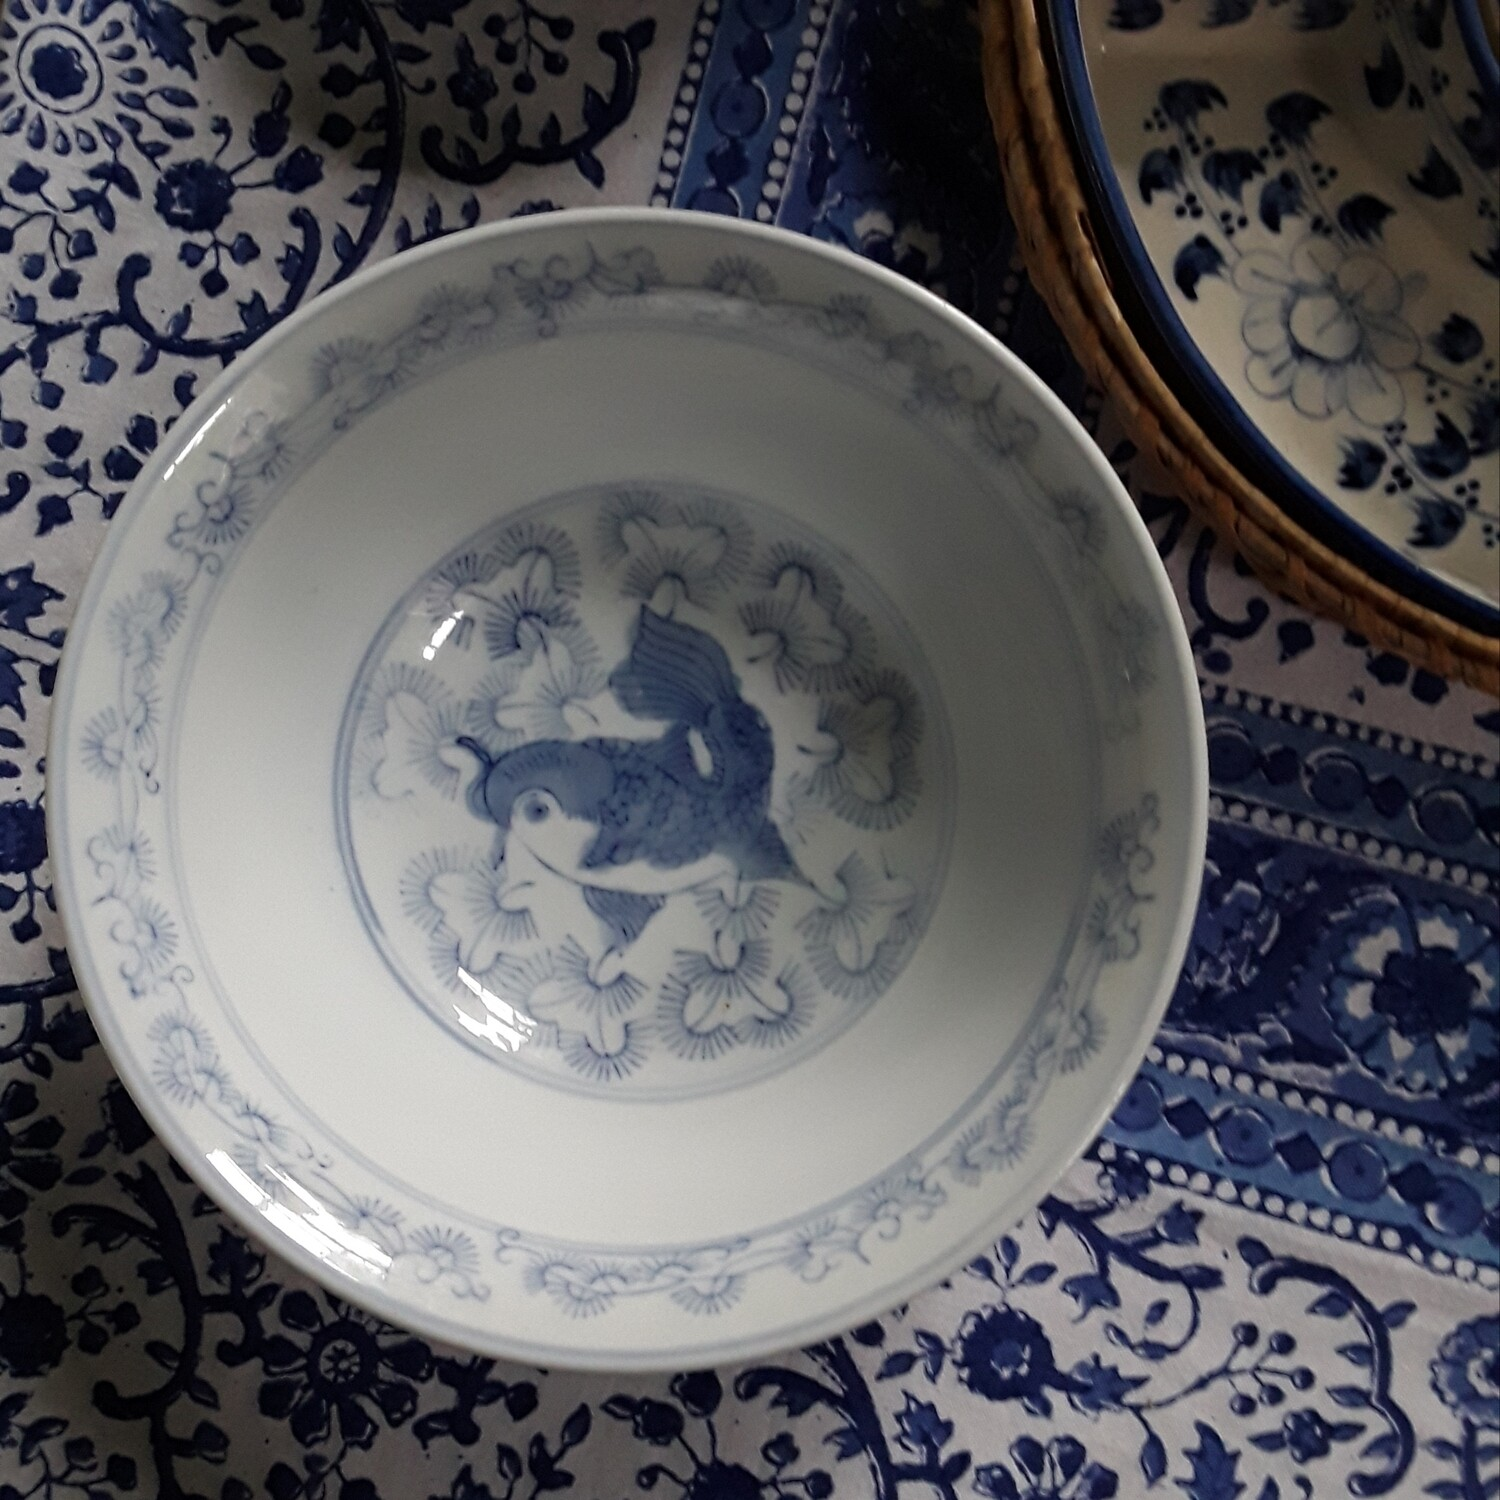 Vintage Blue and White Chinese Porcelain Bowl with Fish Motif